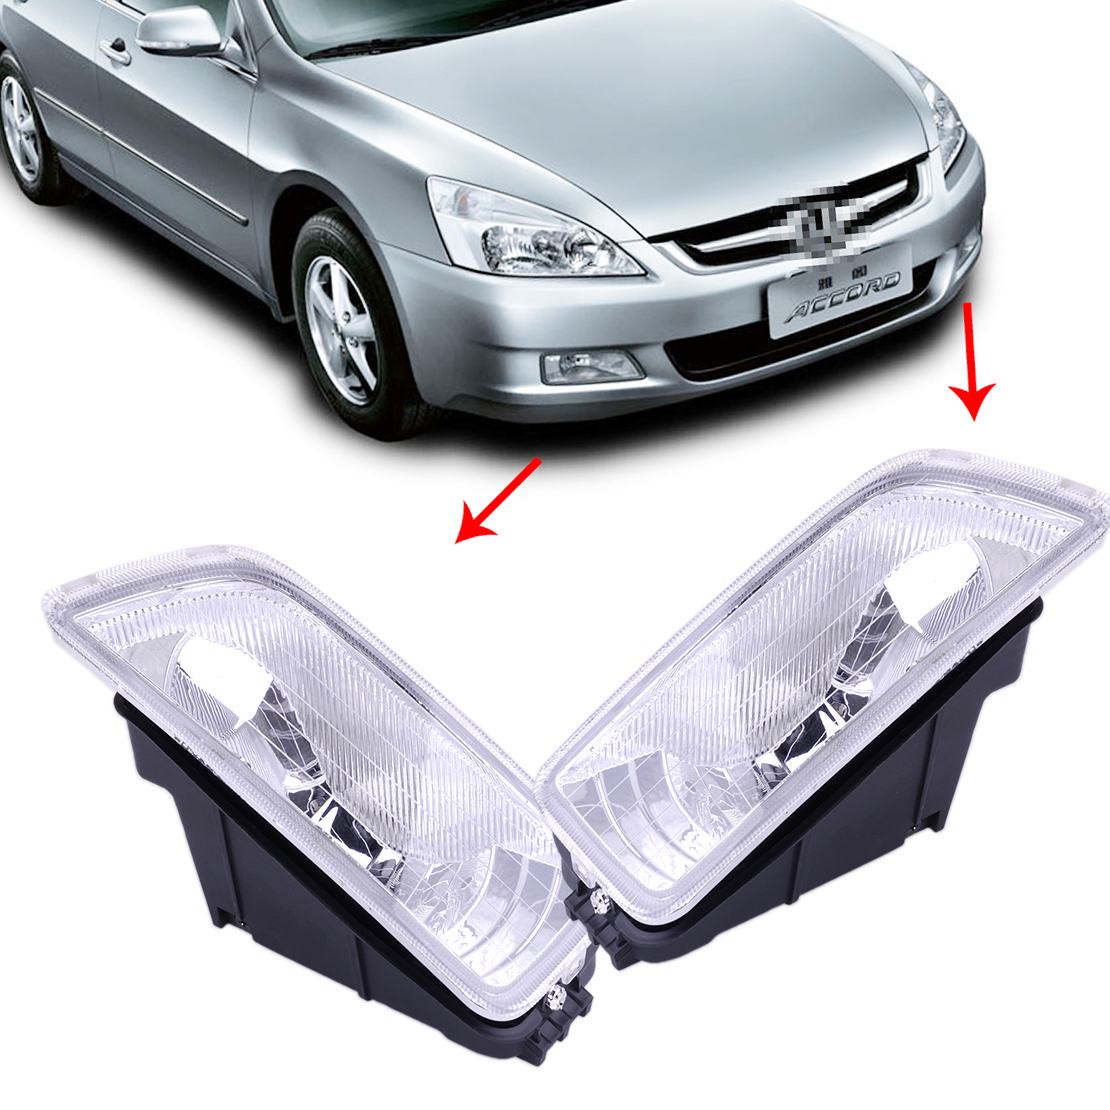 beler 1Pair 33951-SDA-H01 33901-SDA-H01 Front Left & Right Fog Light Lamp Cover Fit for Honda Accord 2003 2004 2005 2006 2007 one pair protective front left right bumper fog light lamp grille covers for a udi a8 s8 q uattro d3 2006 2007 2008